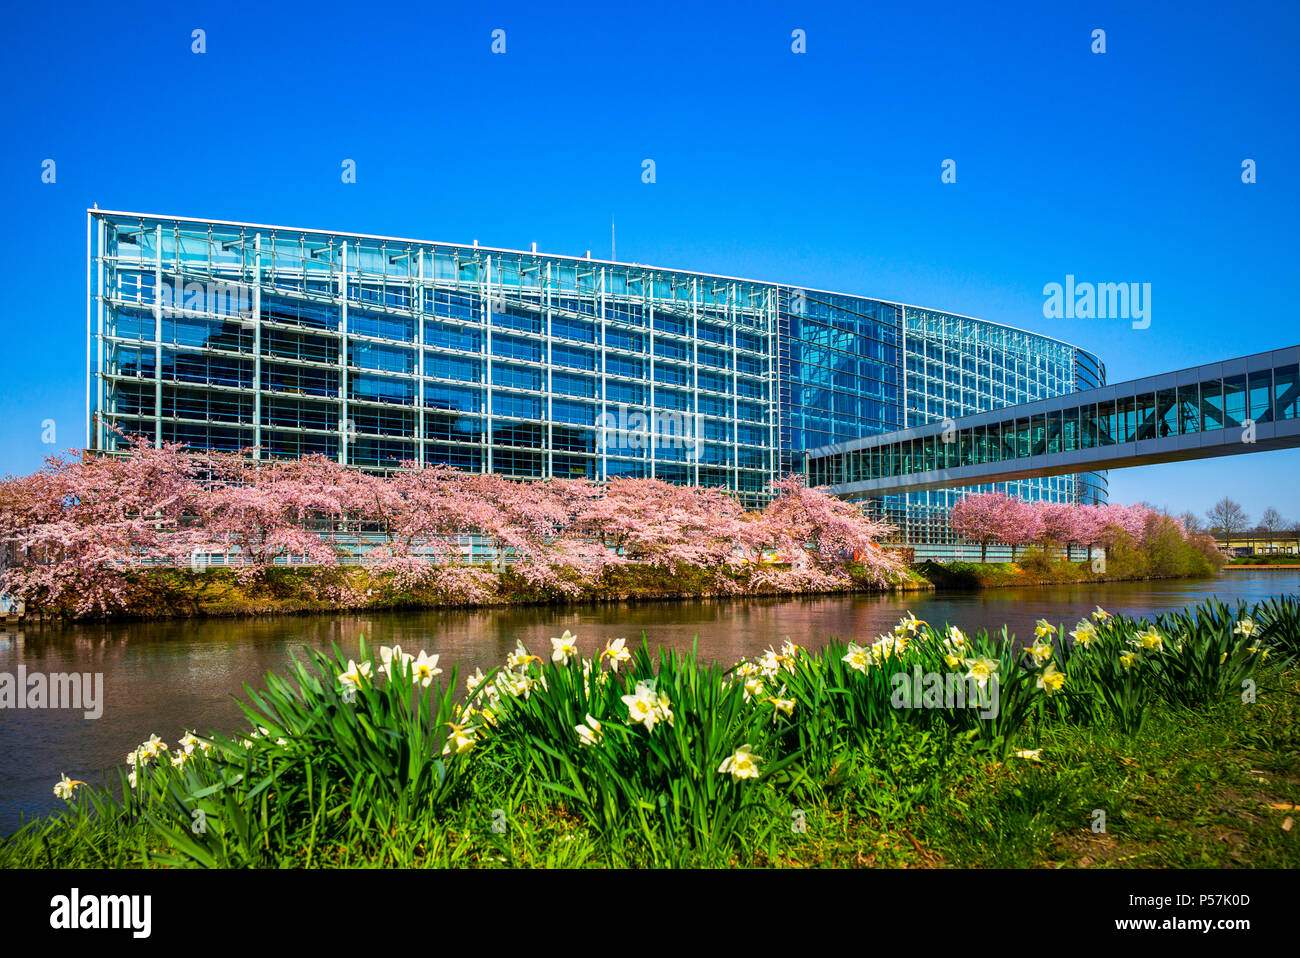 Strasbourg, European Parliament, Louise Weiss building, Ill river, Alsace, France, Europe, - Stock Image